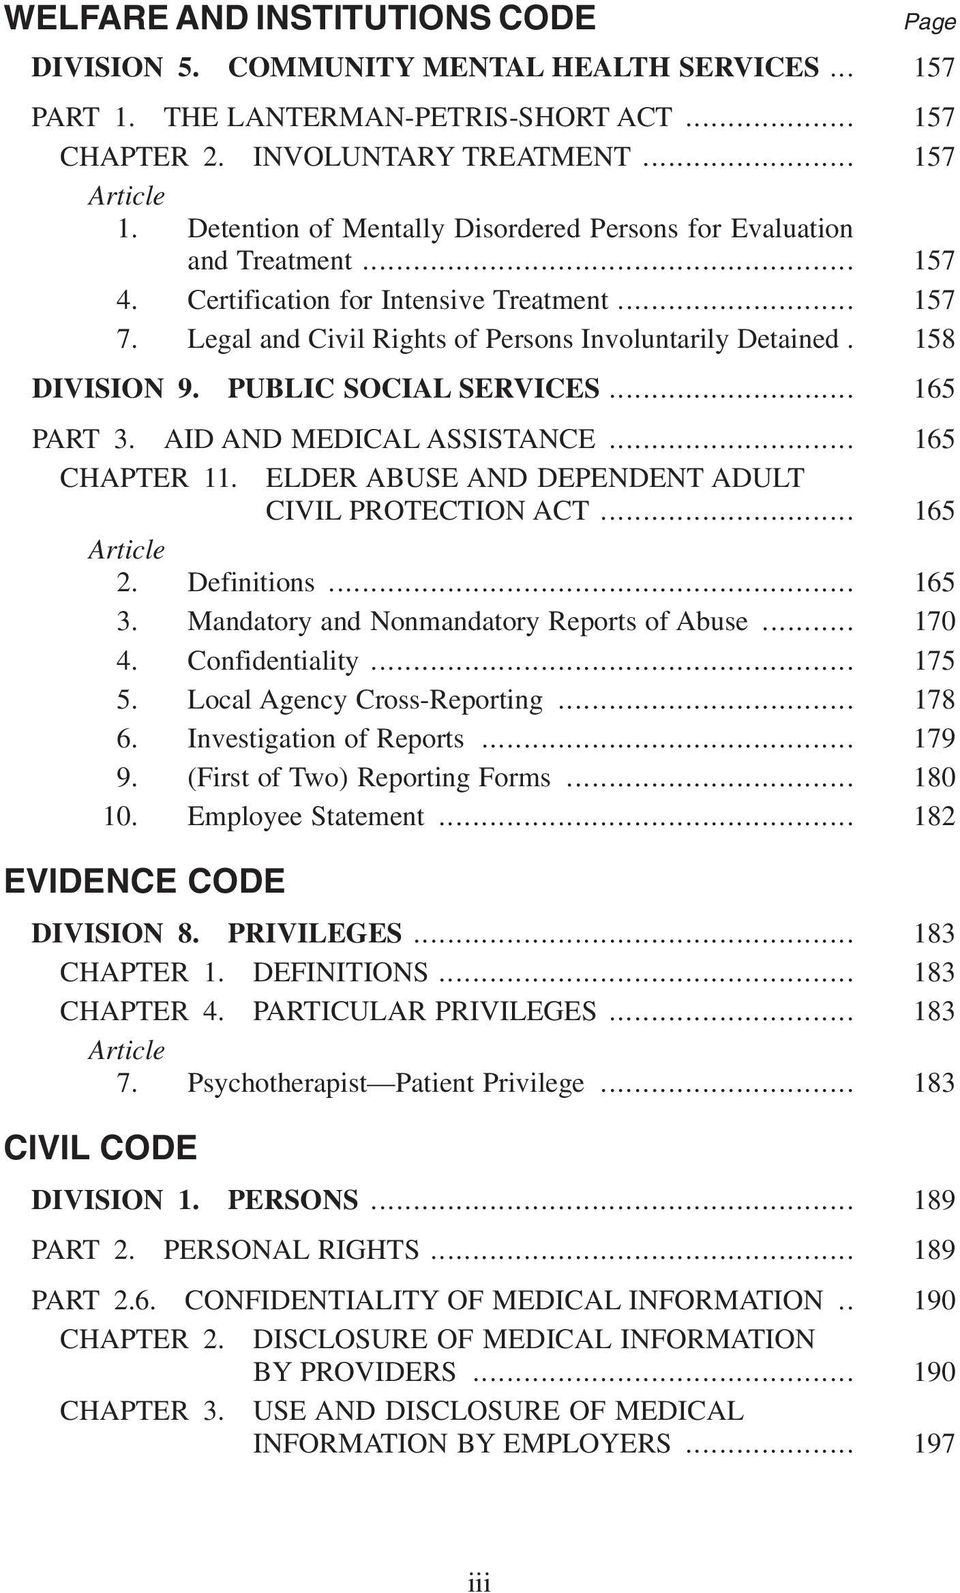 158 DIVISION 9. PUBLIC SOCIAL SERVICES... 165 PART 3. AID AND MEDICAL ASSISTANCE... 165 CHAPTER 11. ELDER ABUSE AND DEPENDENT ADULT CIVIL PROTECTION ACT... 165 Article 2. Definitions... 165 3.